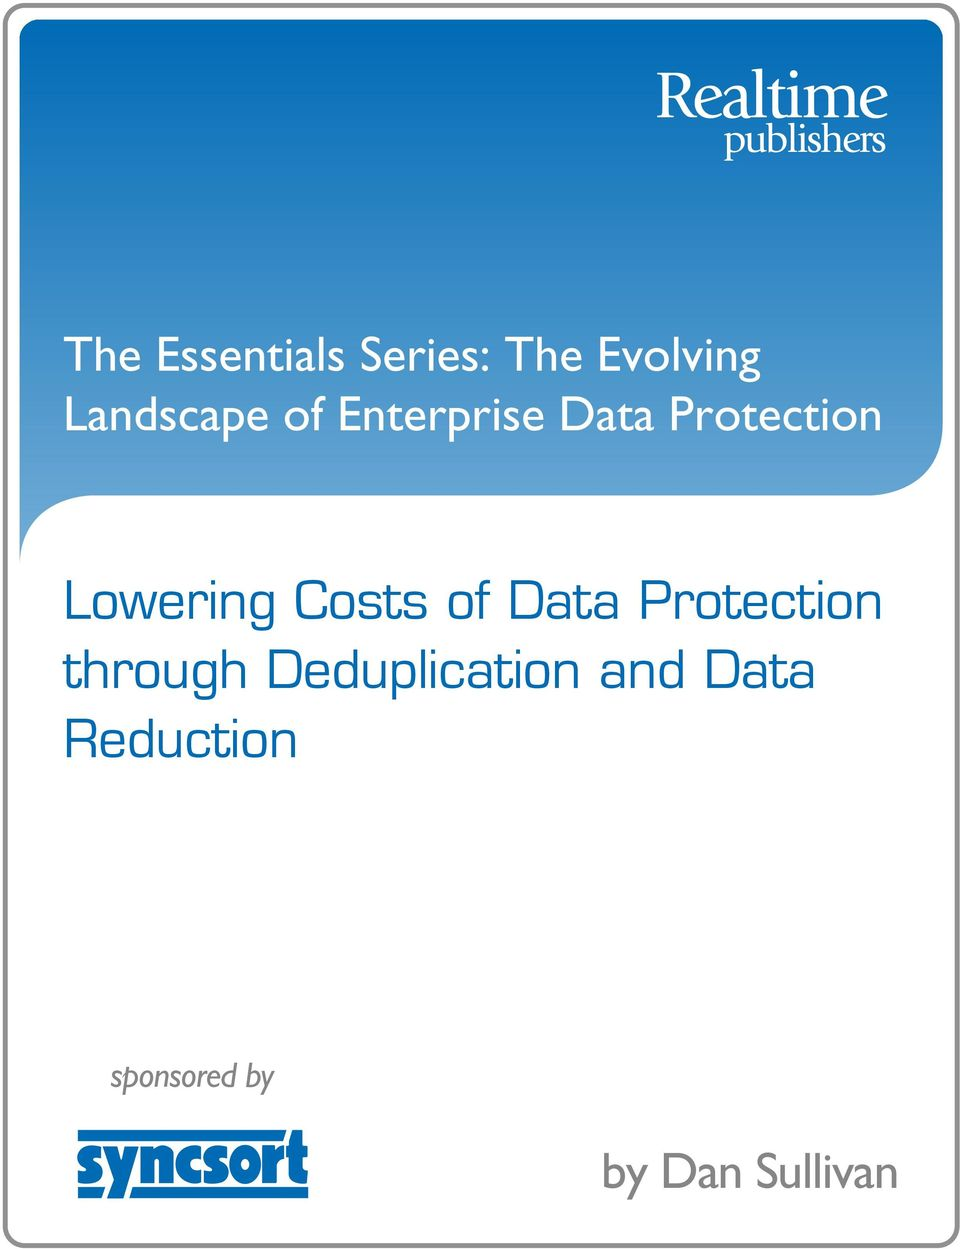 Lowering Costs of Data Protection through